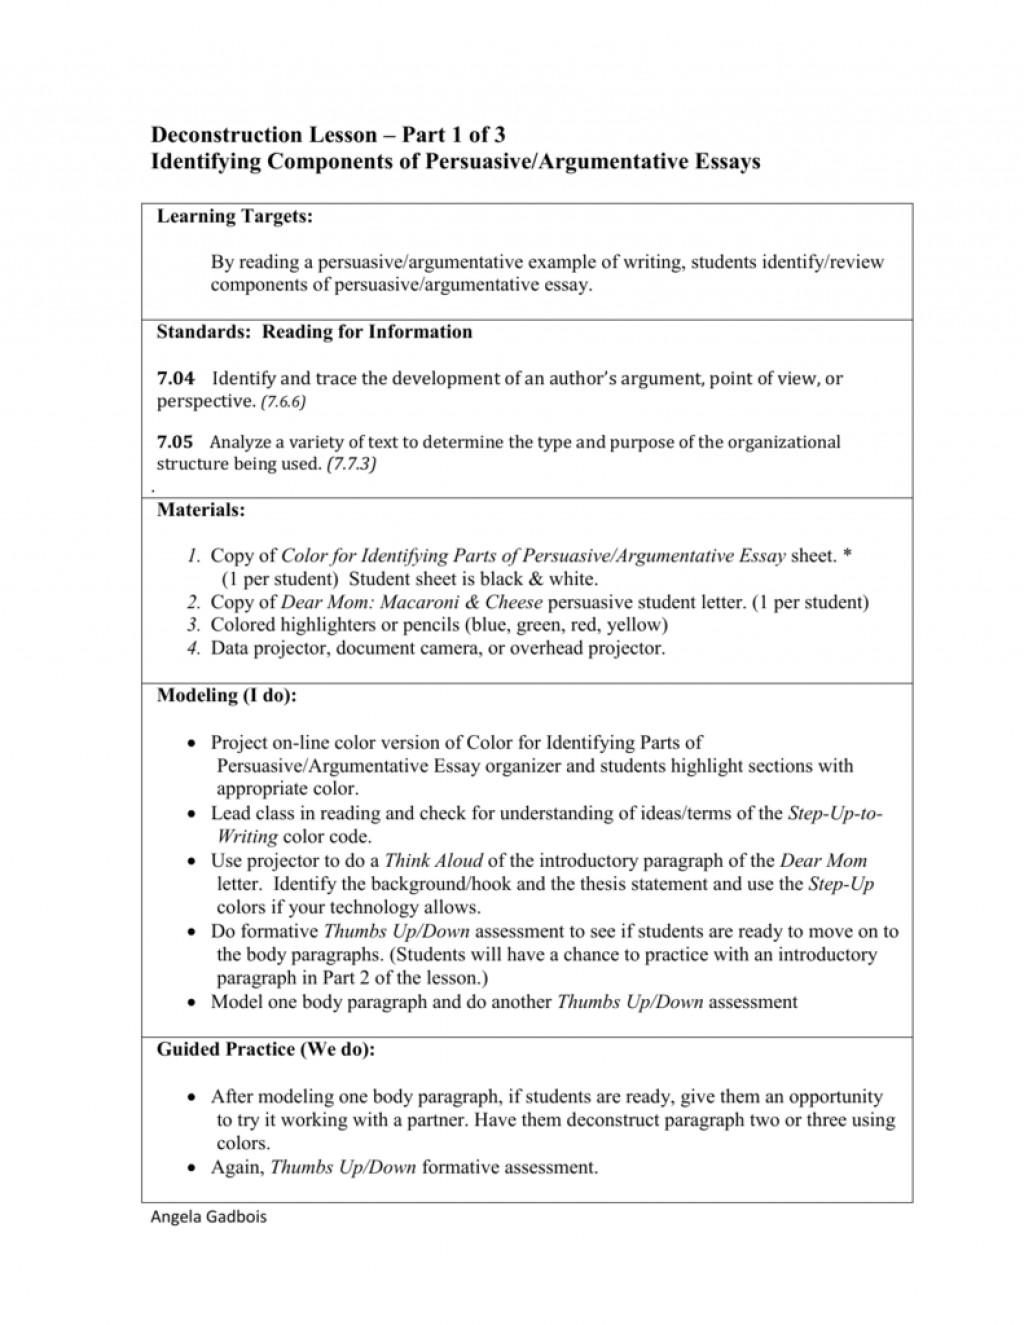 008 Essay Example 008053854 1 Parts Of Imposing 6 A Persuasive Large